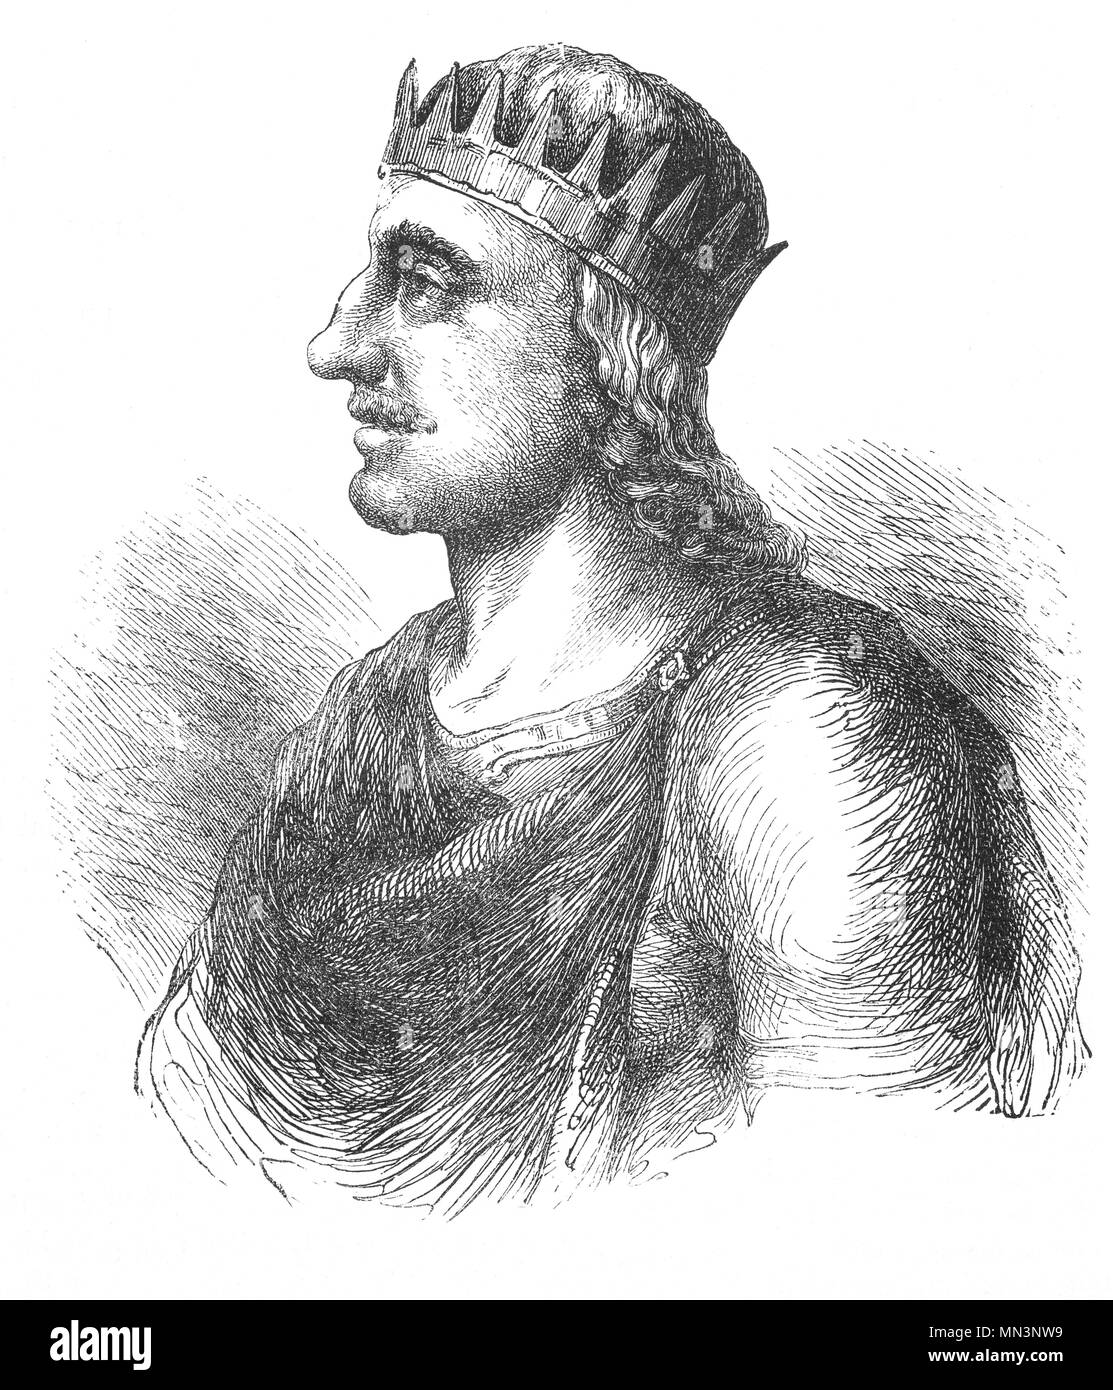 Ecgberht (77–839), also spelled Egbert, Ecgbert, or Ecgbriht, was King of Wessex from 802 until his death in 839. Little is known of the first 20 years of Ecgberht's reign, but it is thought that he was able to maintain the independence of Wessex against the kingdom of Mercia, which at that time dominated the other southern English kingdoms. In 825 Ecgberht defeated Beornwulf of Mercia, temporarily ruling Mercia directly.  He was however, unable to maintain this dominant position, and within a year he lost the throne of Mercia, but retained control of Kent, Sussex, and Surrey. - Stock Image